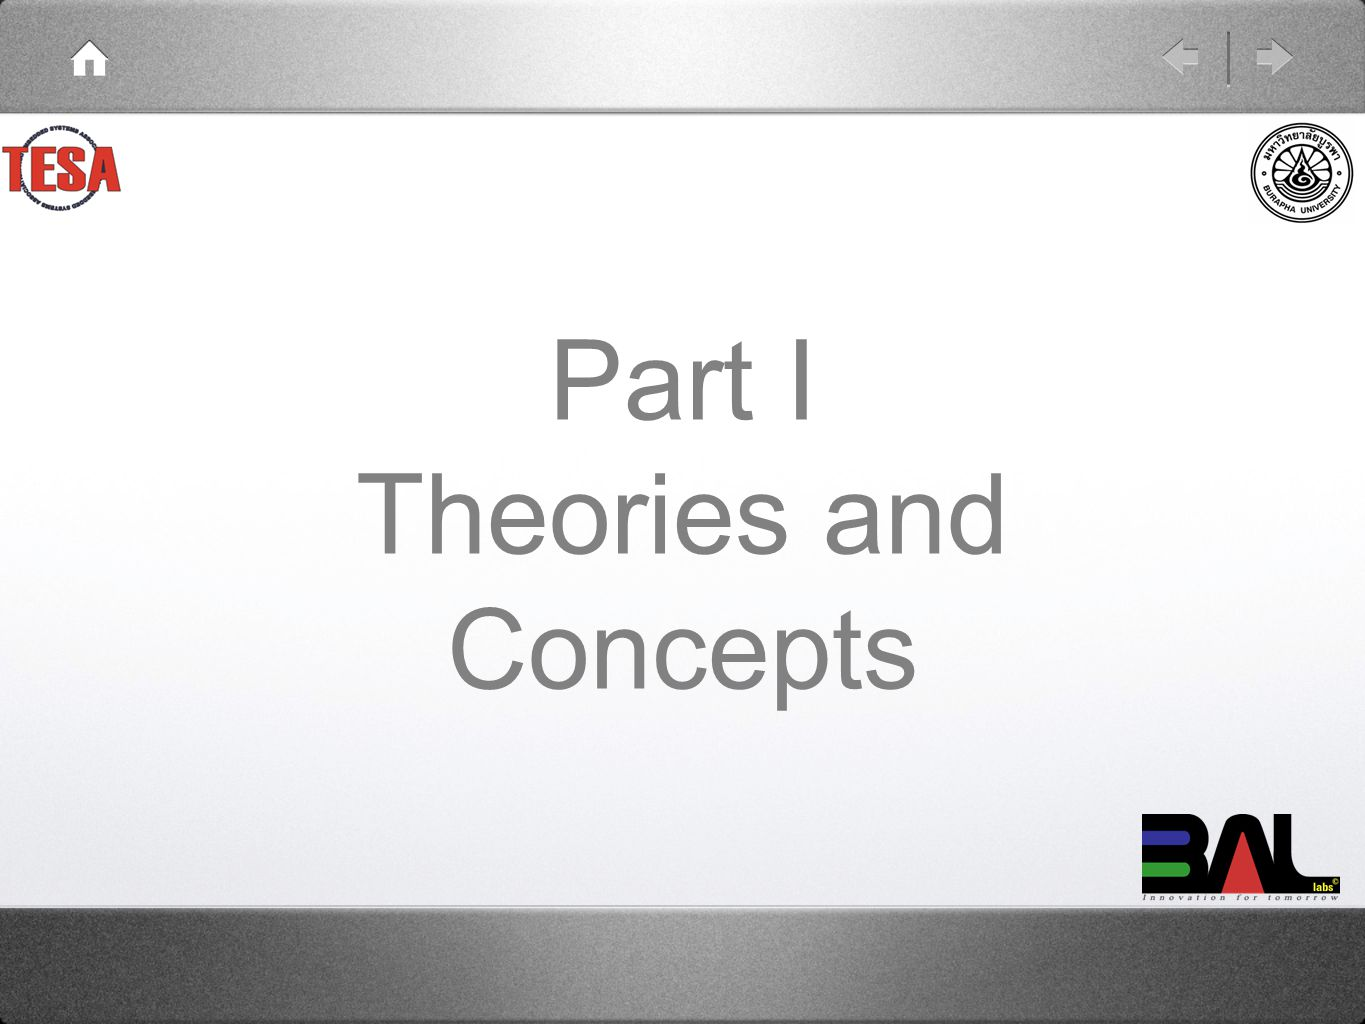 Part I Theories and Concepts